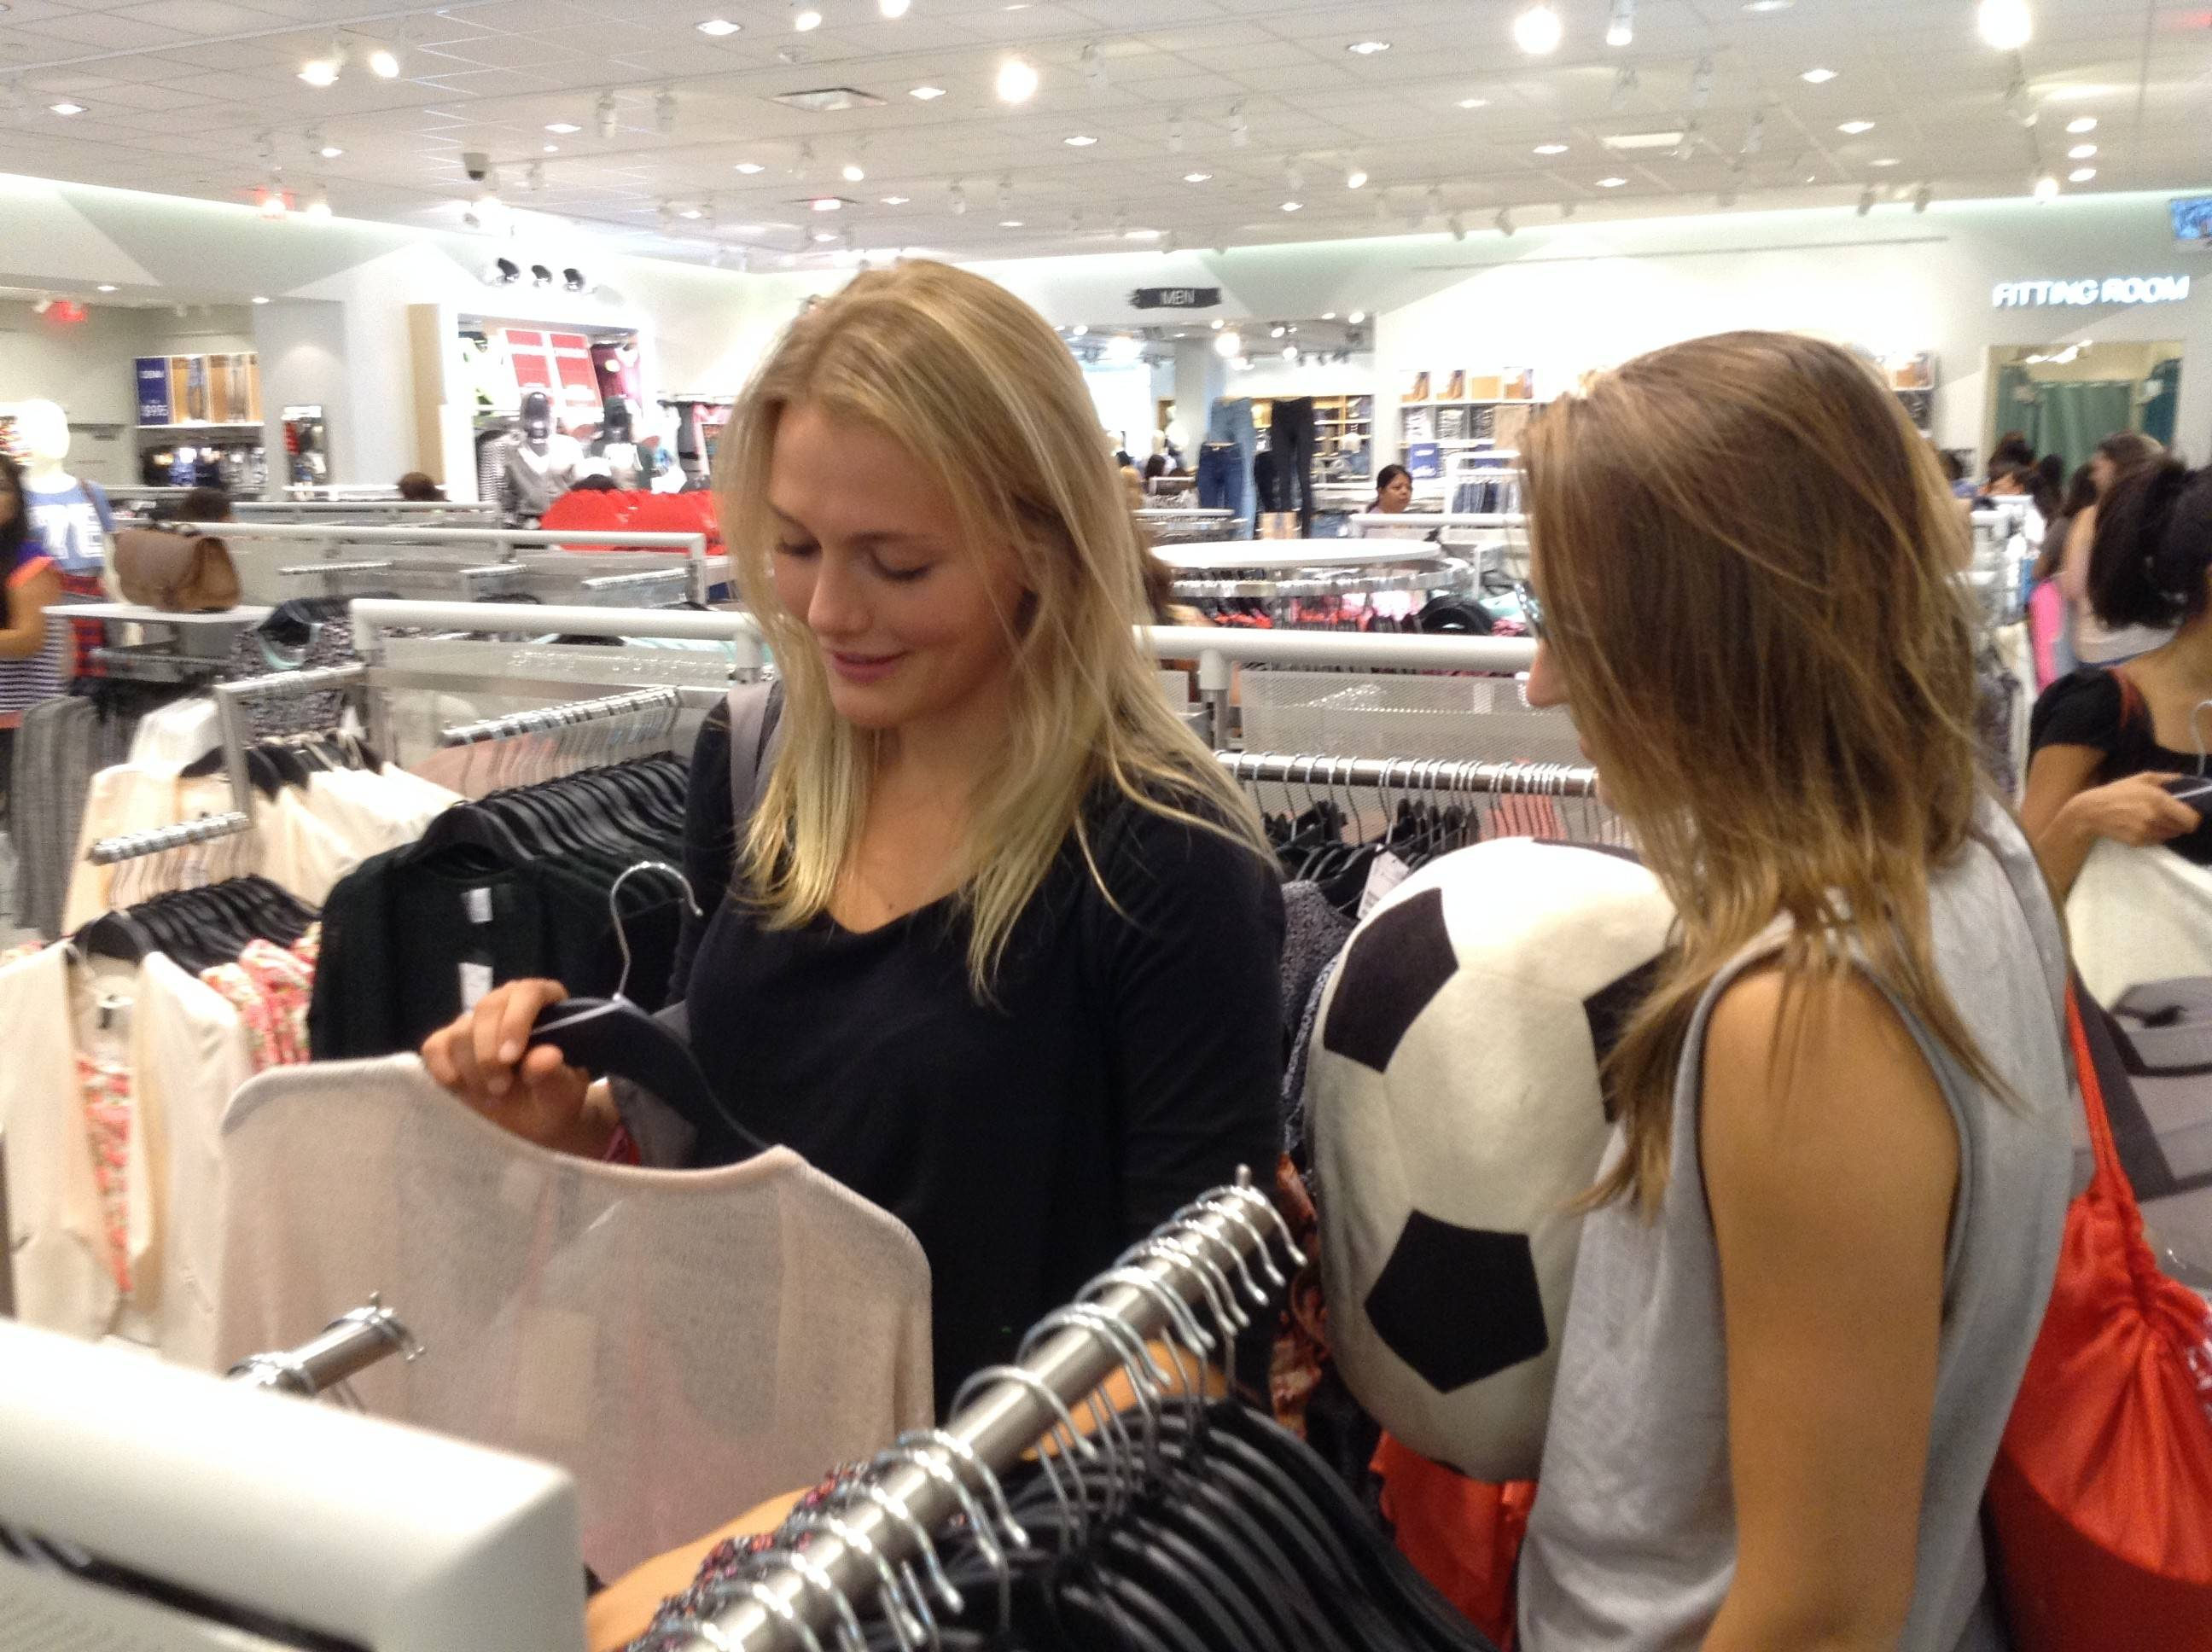 Kotryna Staputyte, left, and Paige Hochstatter of Naperville browse clothing at a new H&M that opened Thursday at Yorktown Center in Lombard. The two women waited in line for about three hours to be among the first customers.